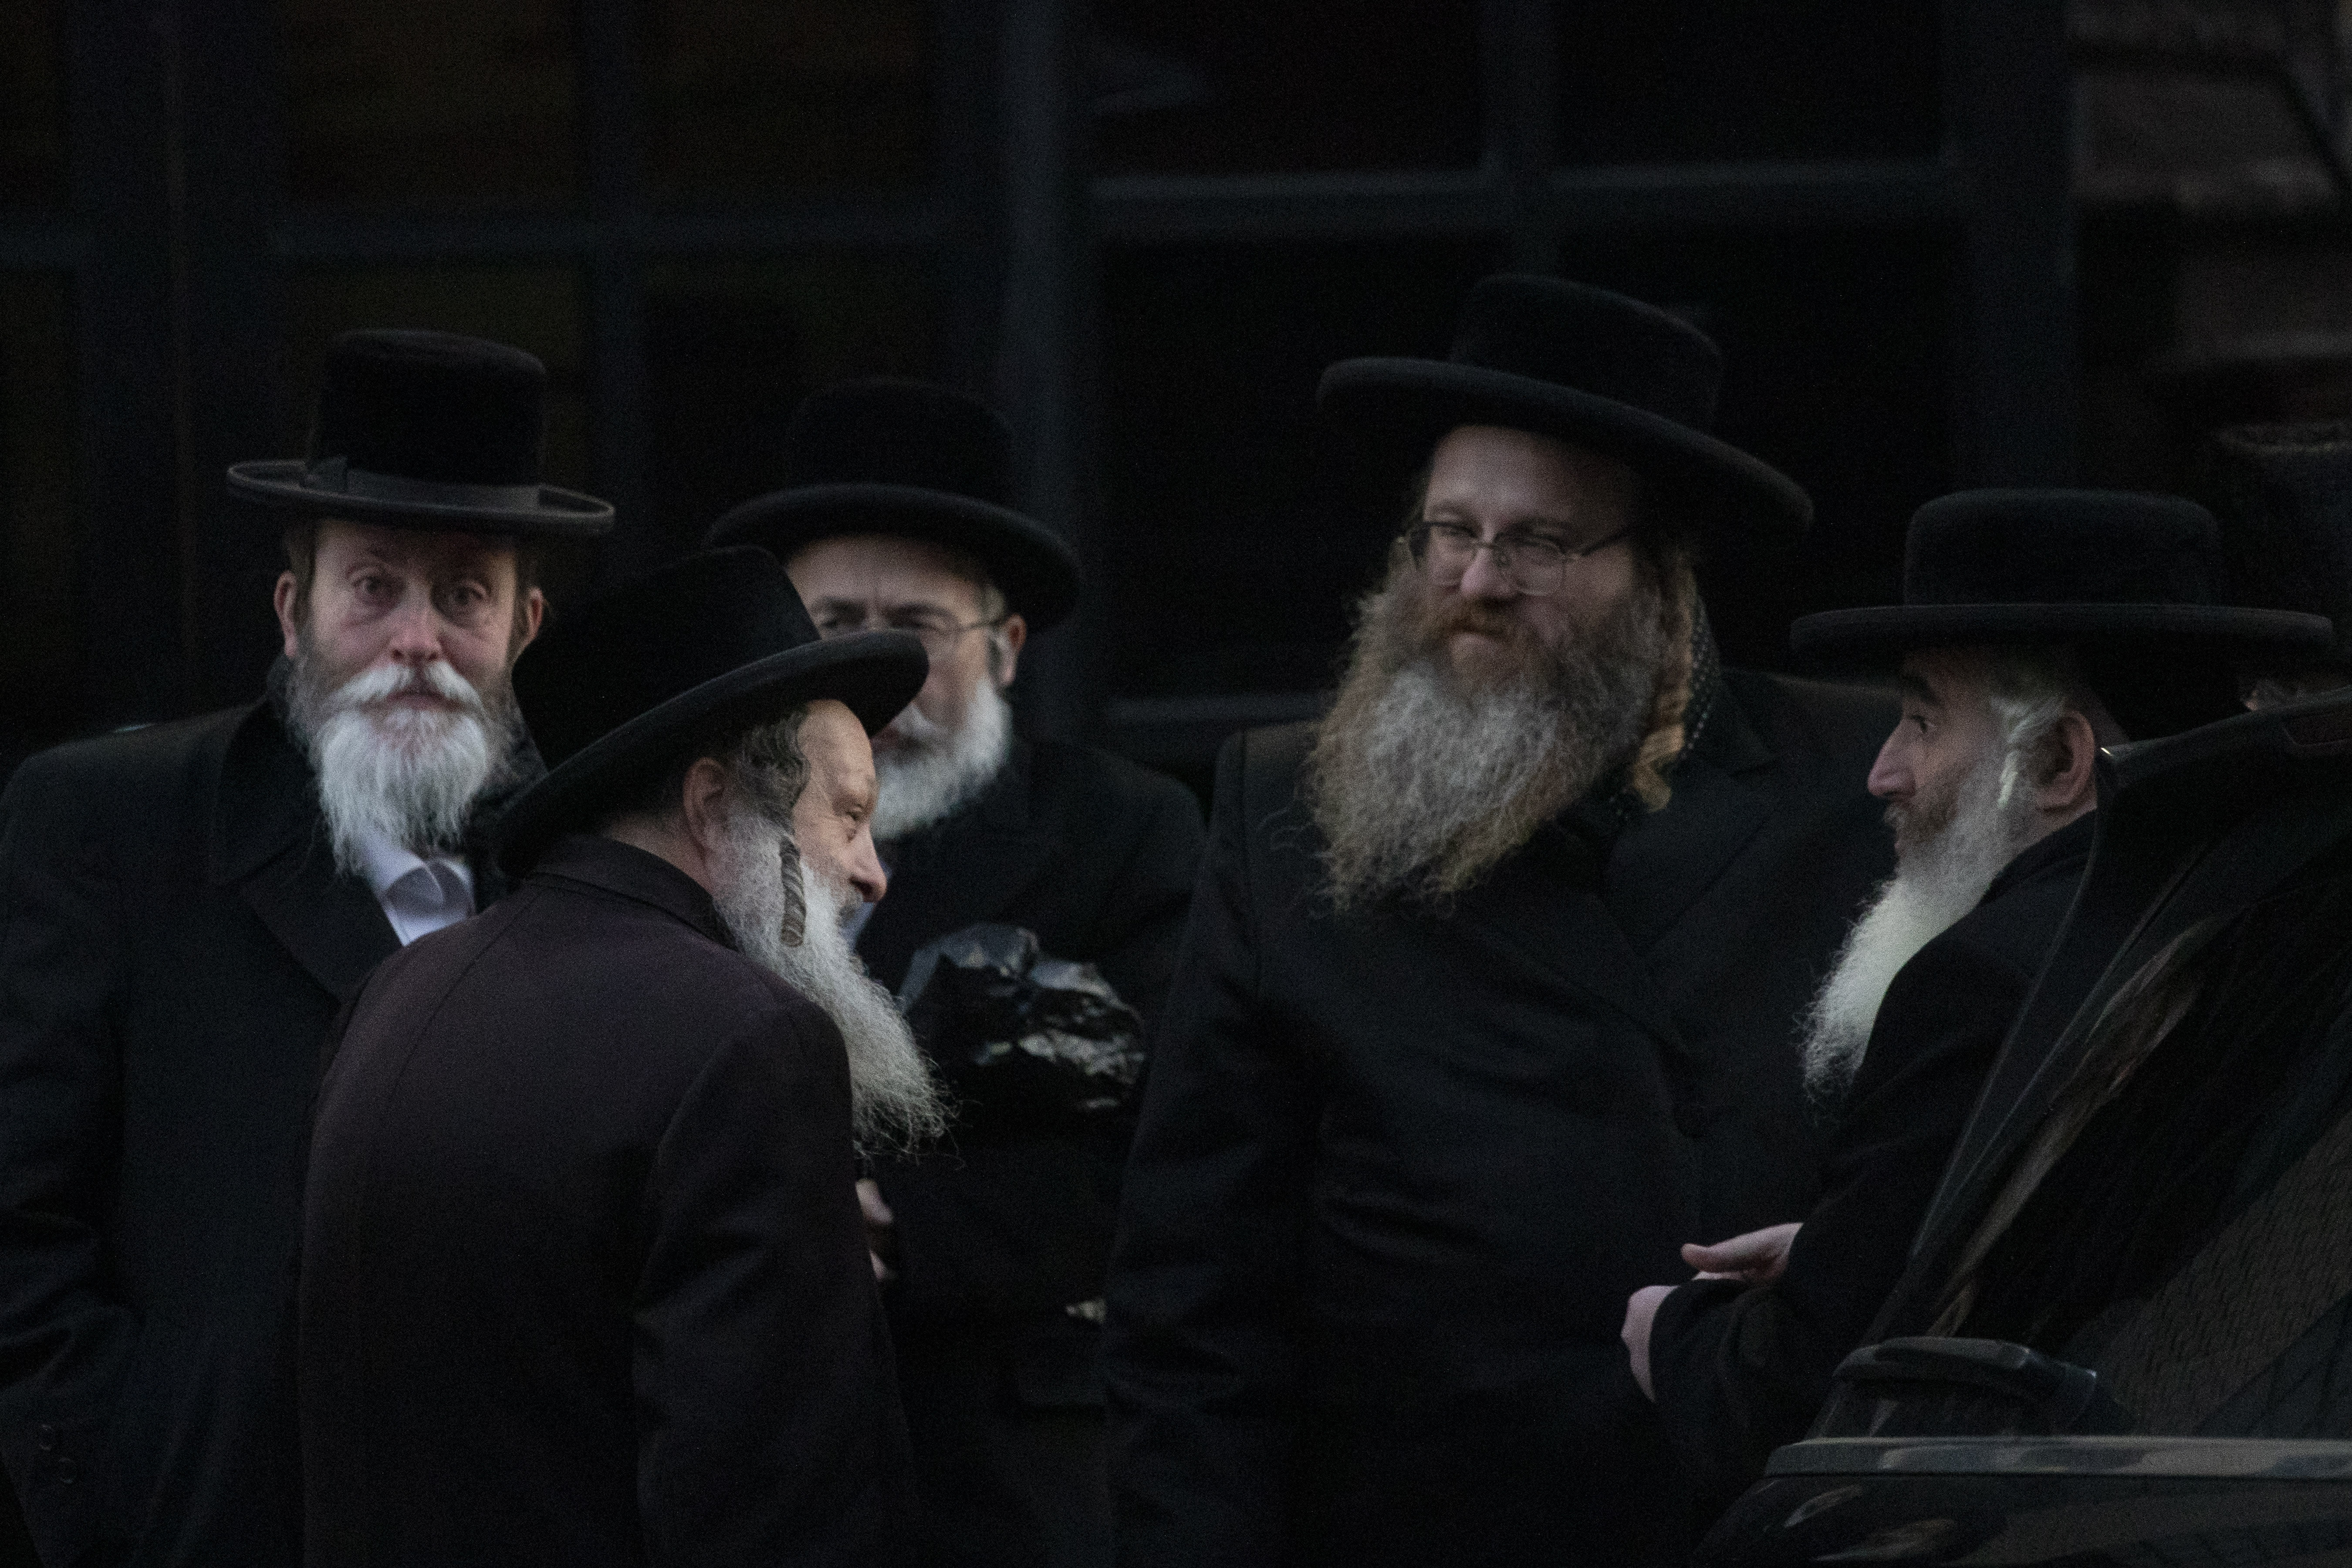 Orthodox Jewish men gather outside a Brooklyn synagogue prior to a funeral for Mosche Deutsch, Wednesday, Dec. 11, 2019 in New York. Deutsch, a rabbinical student from Brooklyn, was killed Tuesday in the shooting inside a Jersey City, N.J. market. (AP Photo/Mark Lennihan)